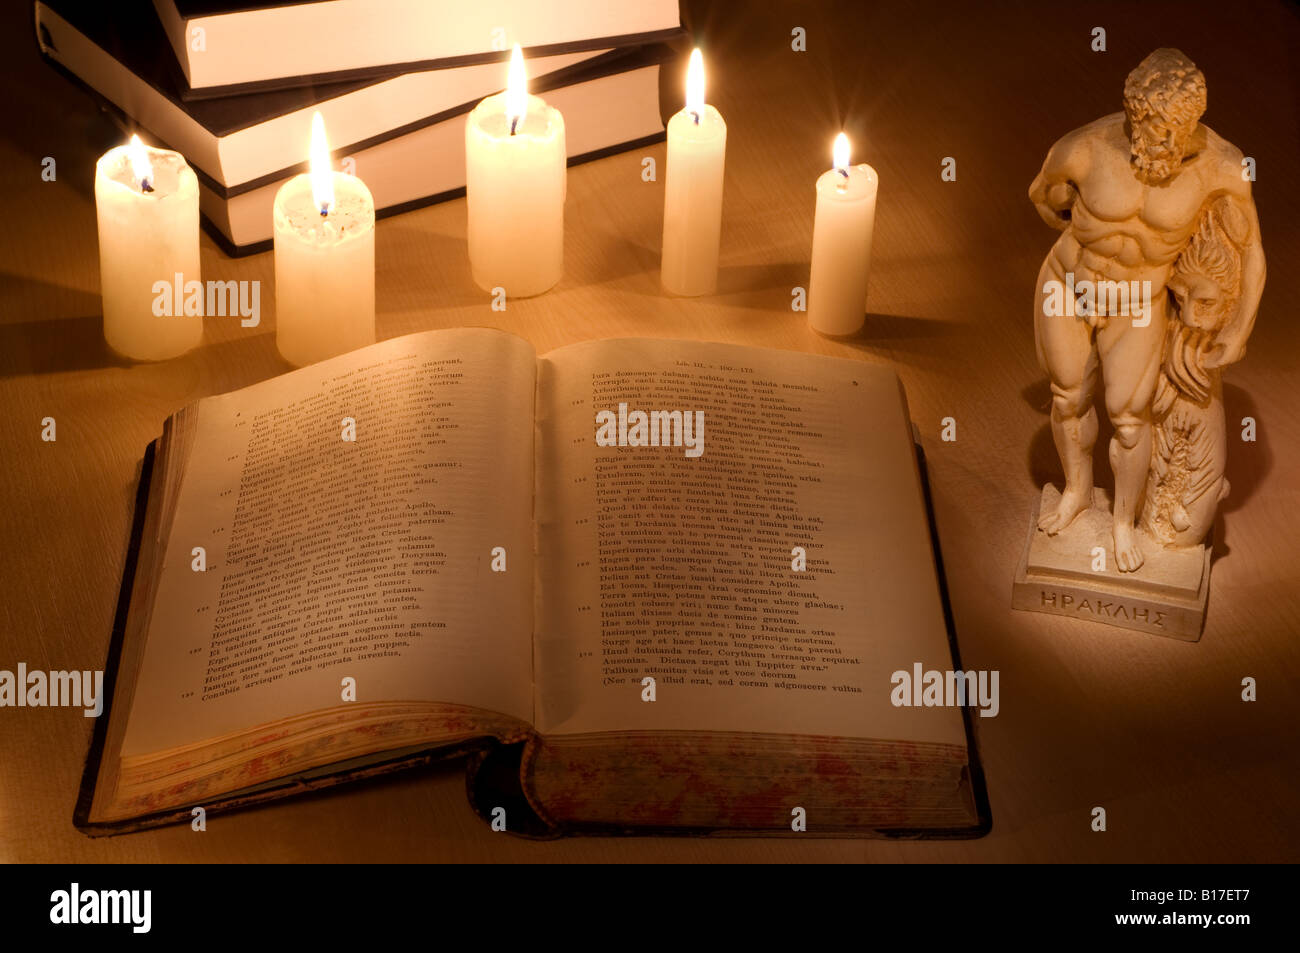 Still-life with an old Latin book of Virgil's Aeneid, candles and antique statue of Heracles. - Stock Image